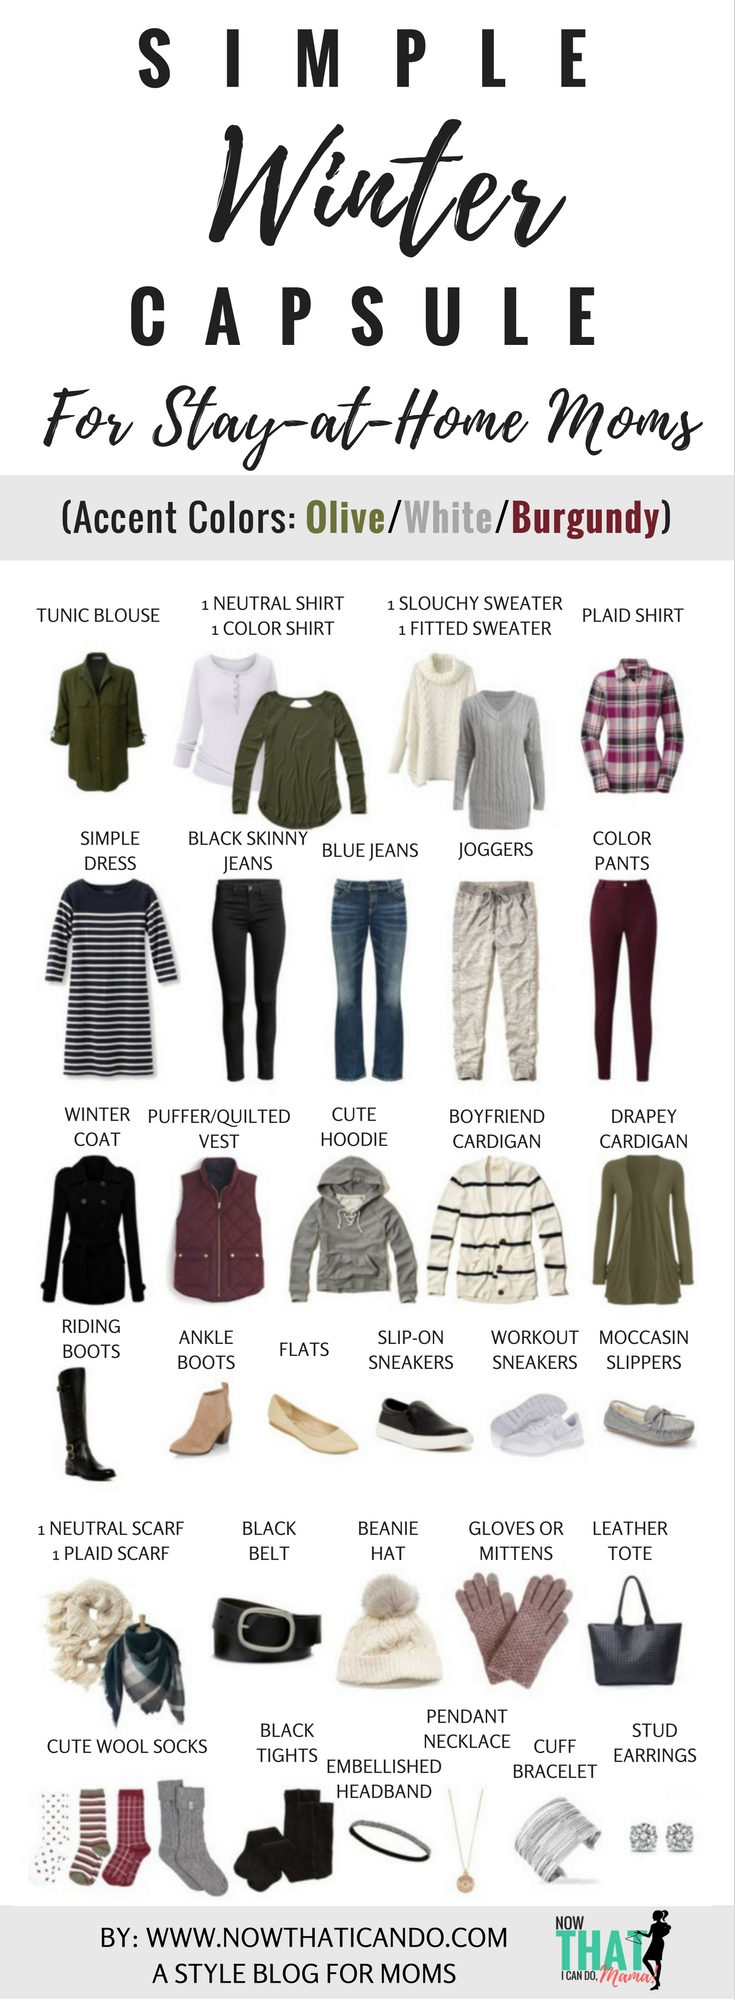 winter wardrobe plan 130 outfits for stay at home moms free download now that i can do mama. Black Bedroom Furniture Sets. Home Design Ideas